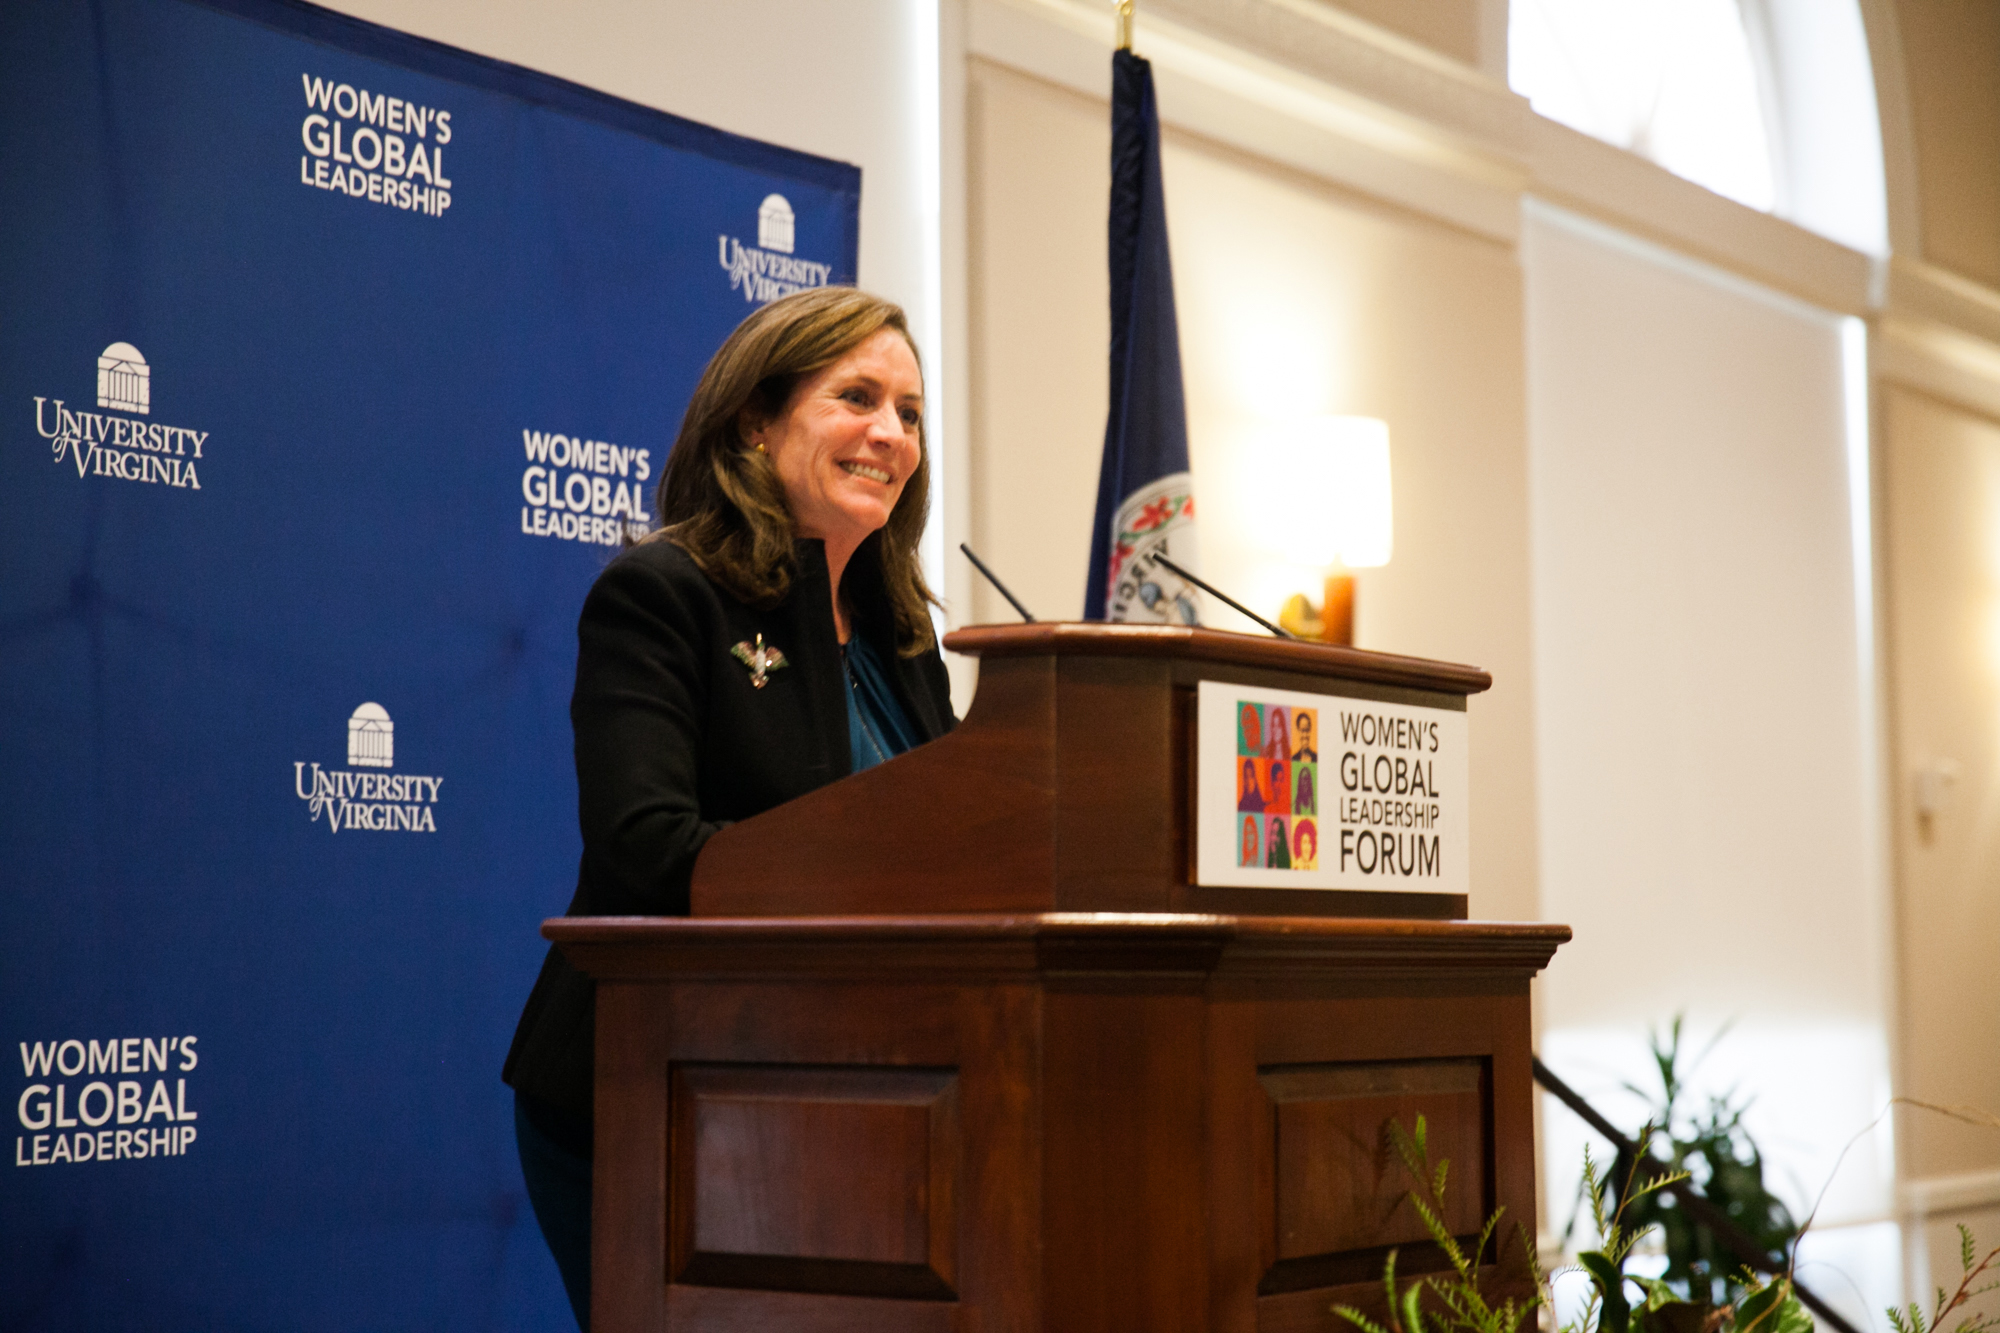 Dorothy McAuliffe, wife of Virginia Gov. Terry McAuliffe, spoke Tuesday at the Women's Global Leadership Forum. (Photo by Tom Daly)